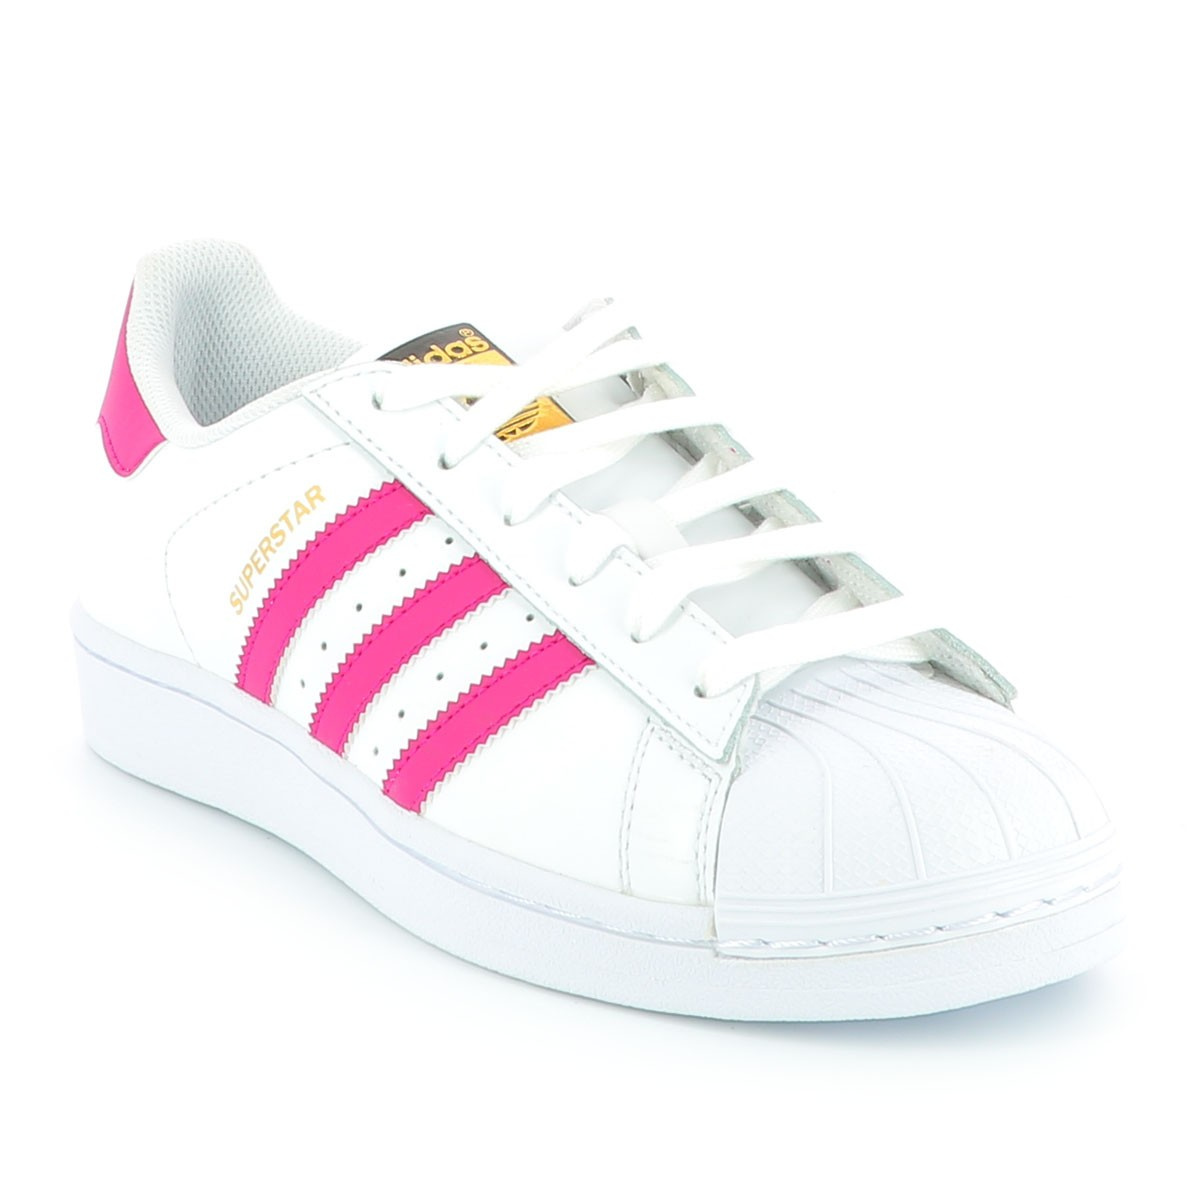 nouvelle arrivee ad3fe 89f96 ADIDAS ORIGINALS Baskets Superstar fille rose